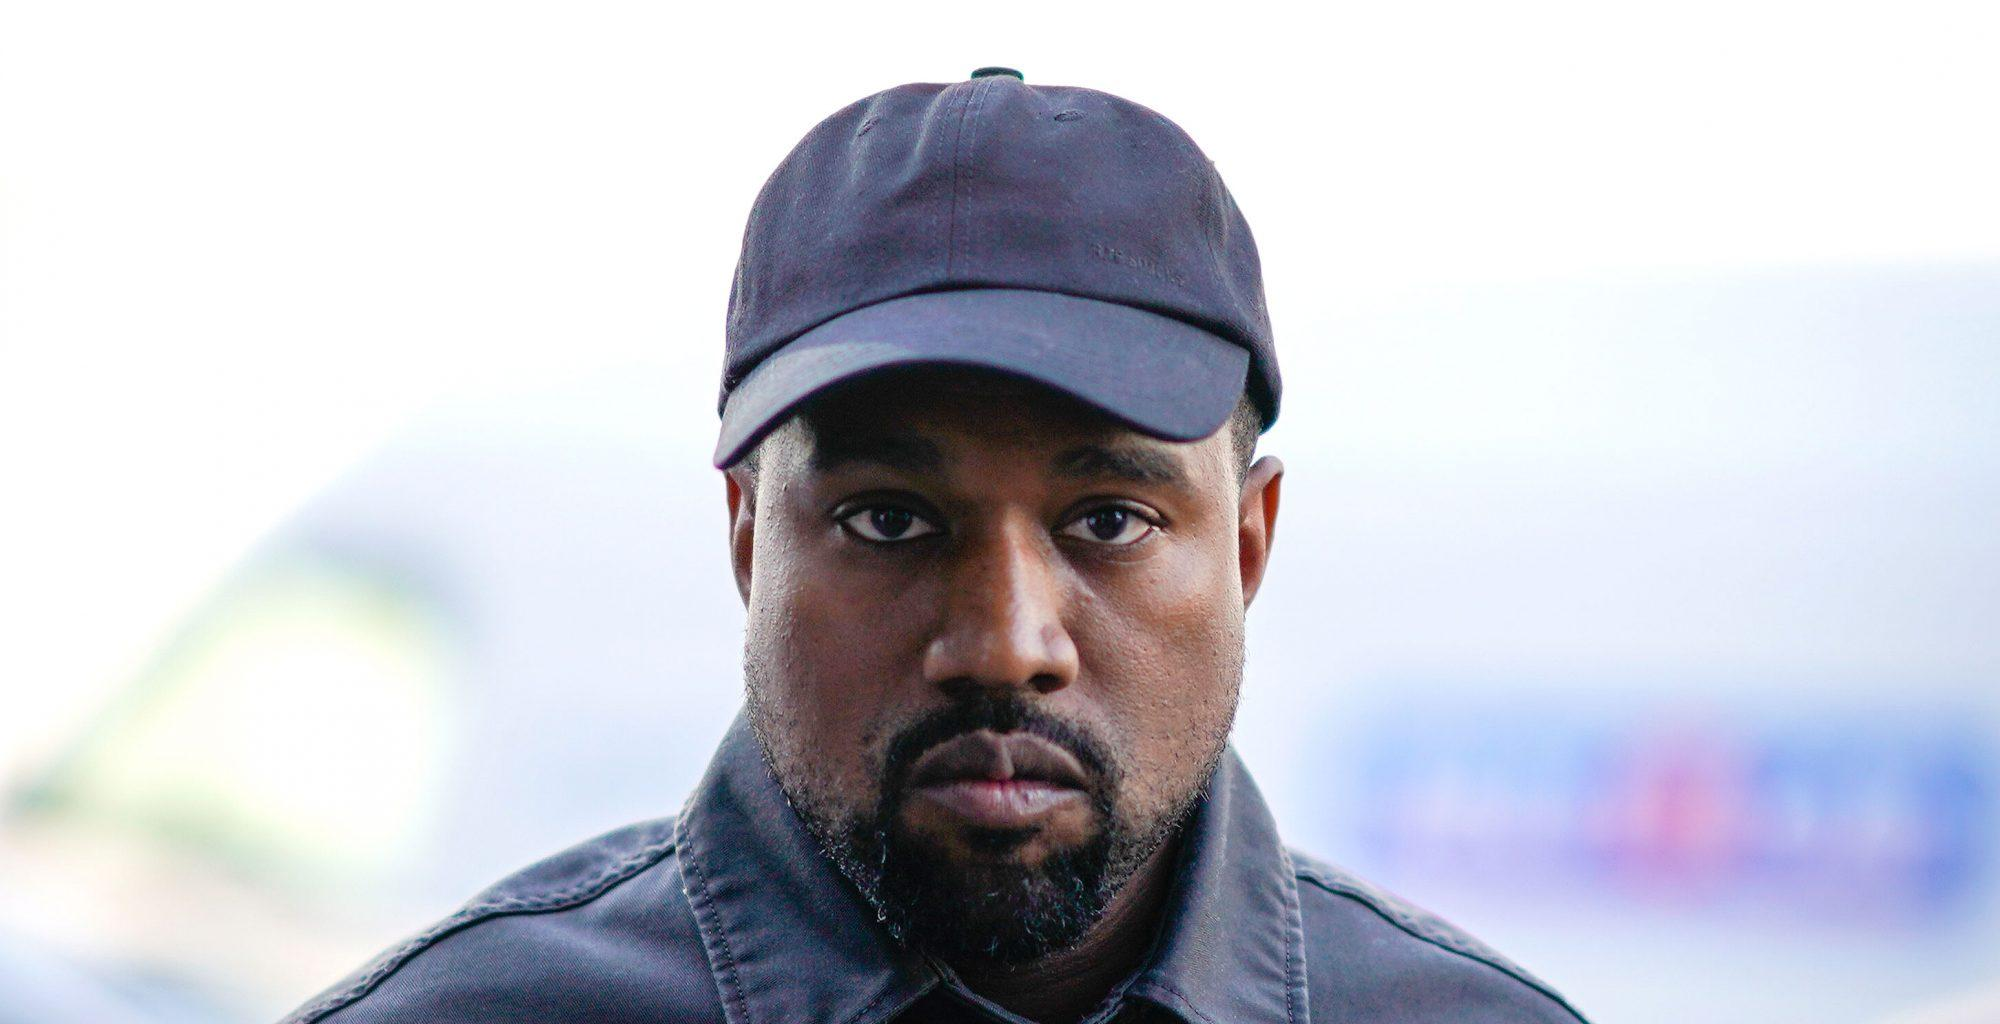 Kanye West Calls Himself 'Special' - Tells Both Donald Trump And Joe Biden To 'Bow Out' Of The Presidential Election!